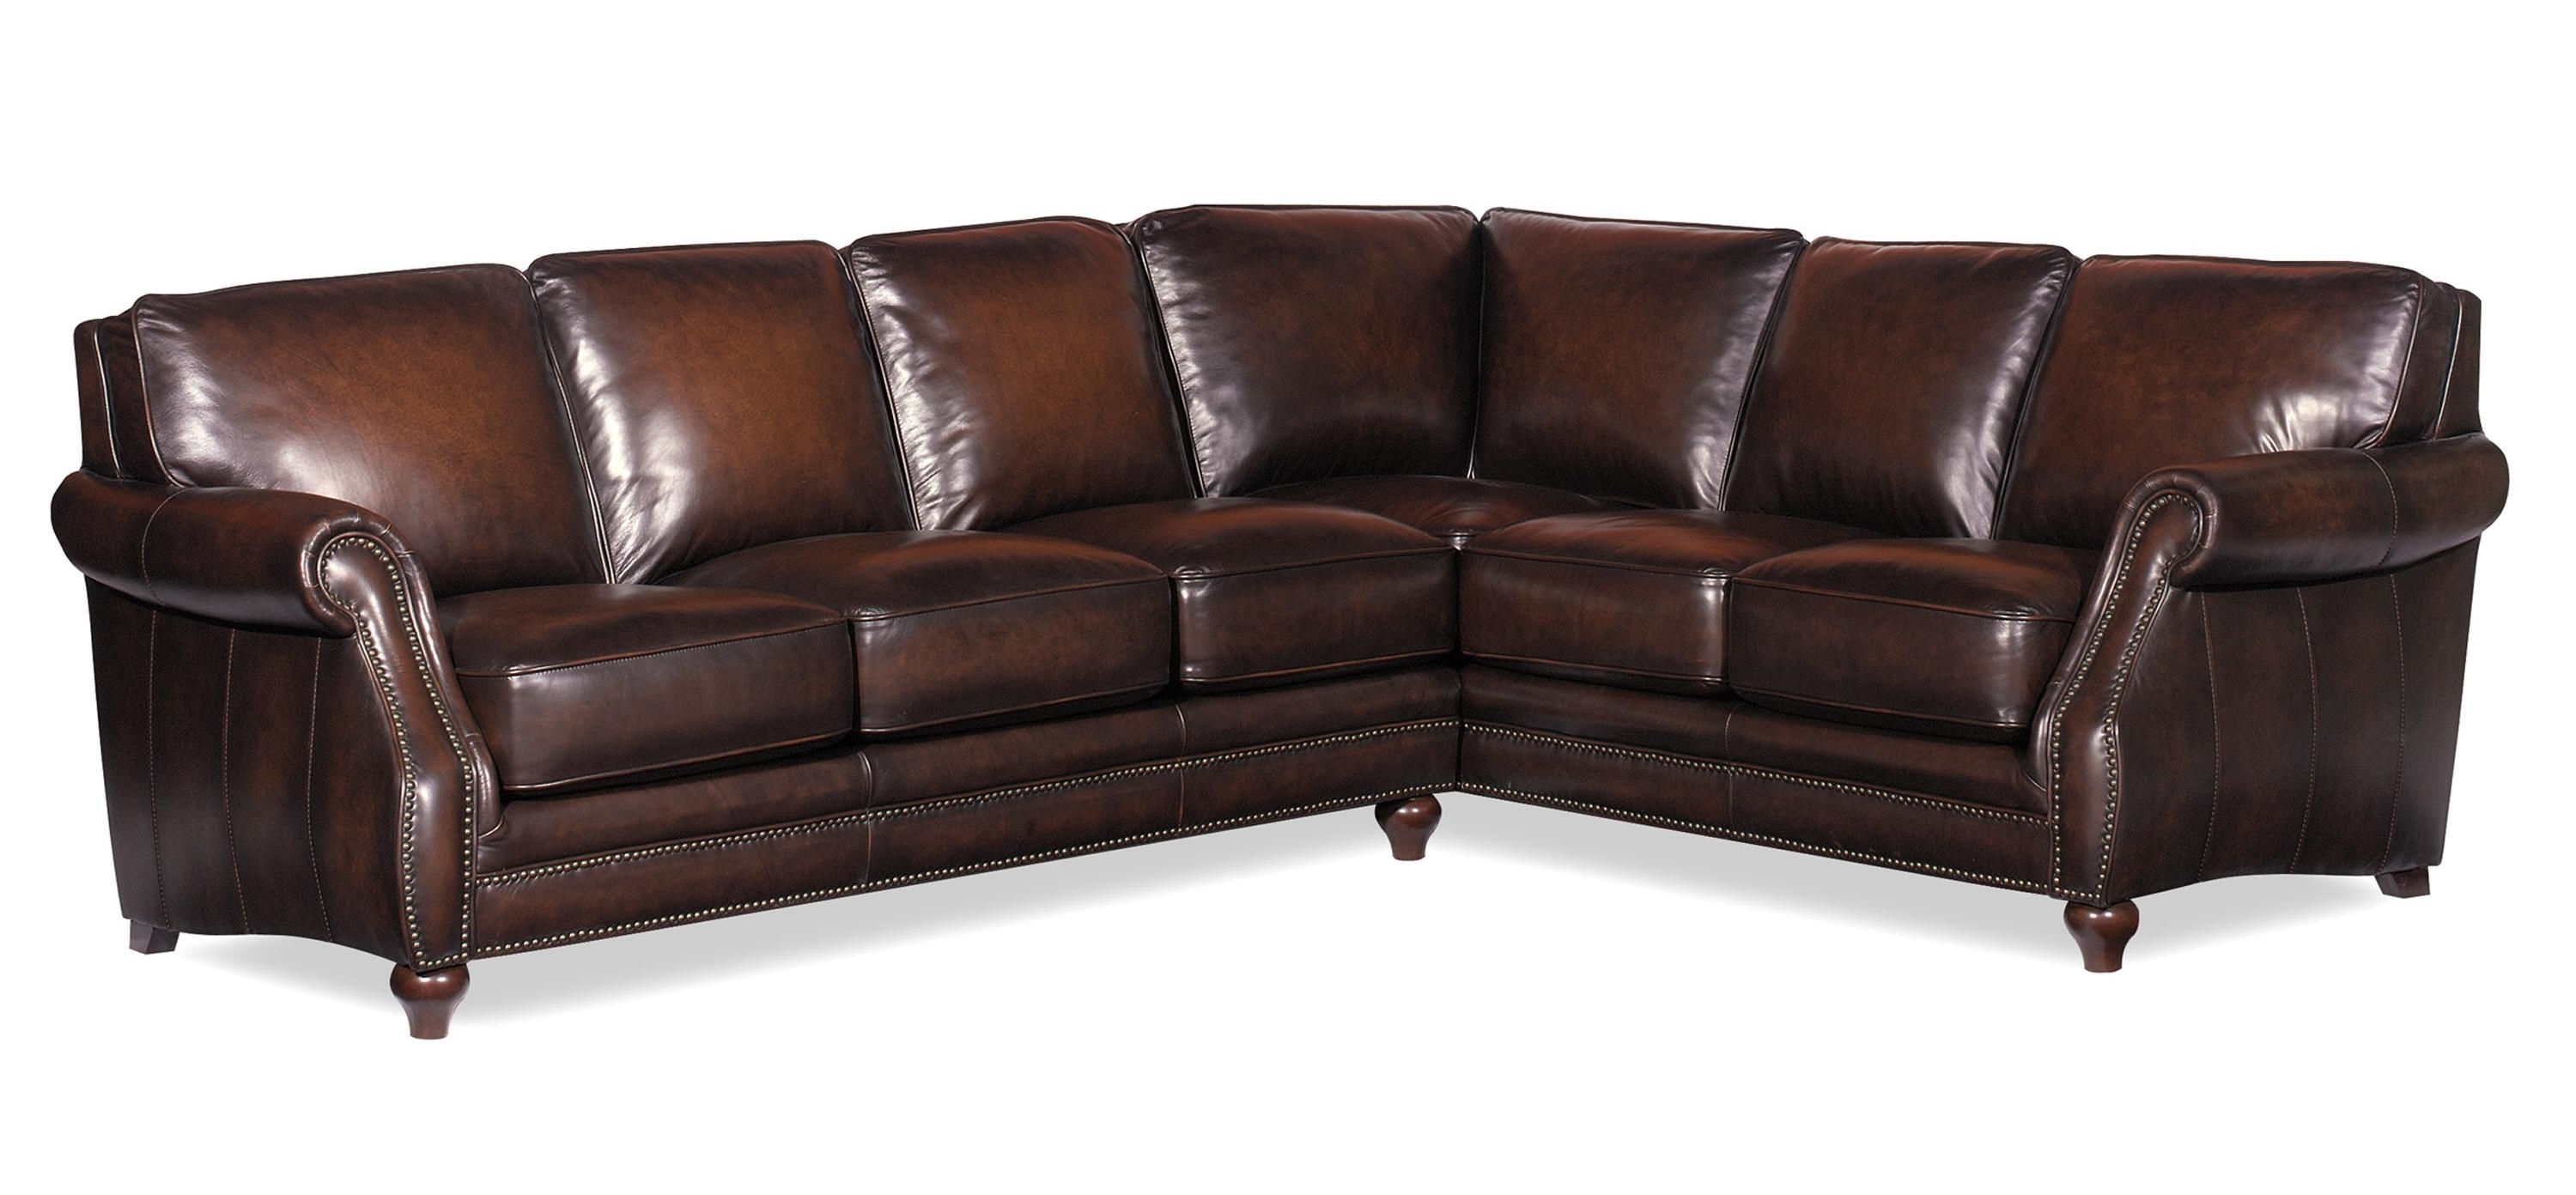 L121500 Two Piece Sectional Sofahickorycraft//johnny Janosik With Trendy Johnny Janosik Sectional Sofas (View 11 of 15)